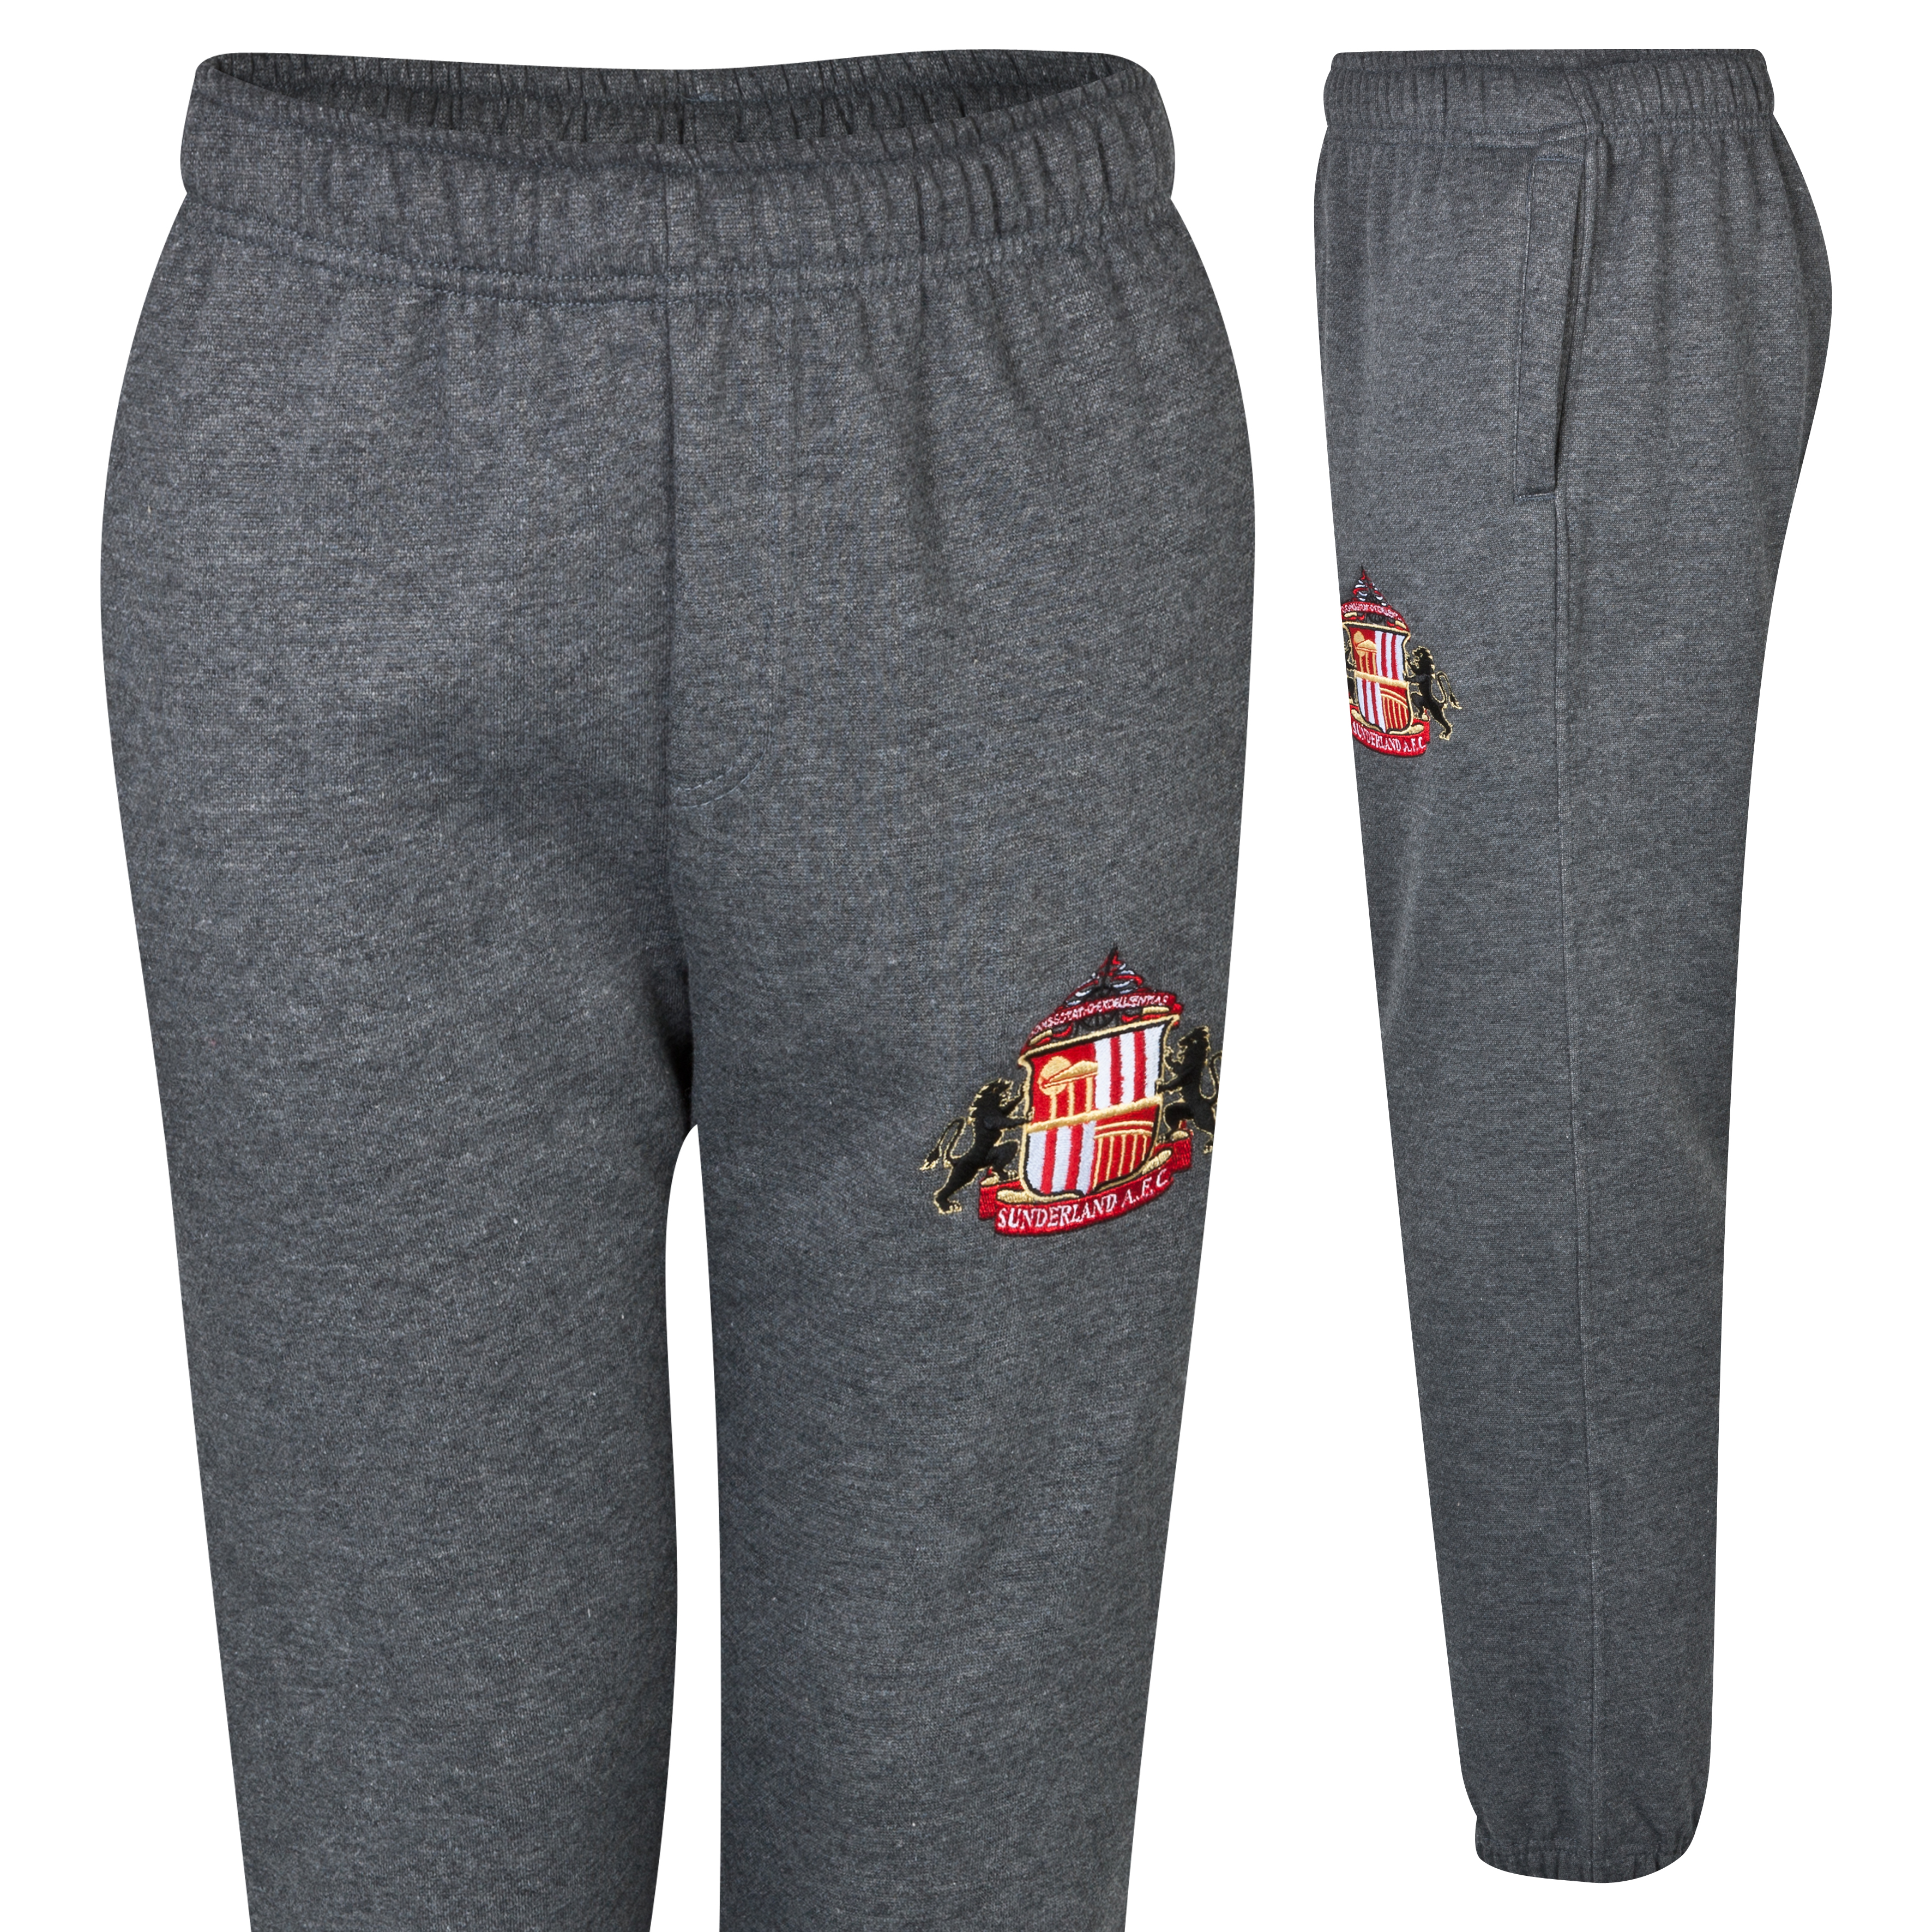 Sunderland Essentials Stride Pants - Infant Boys Charcoal